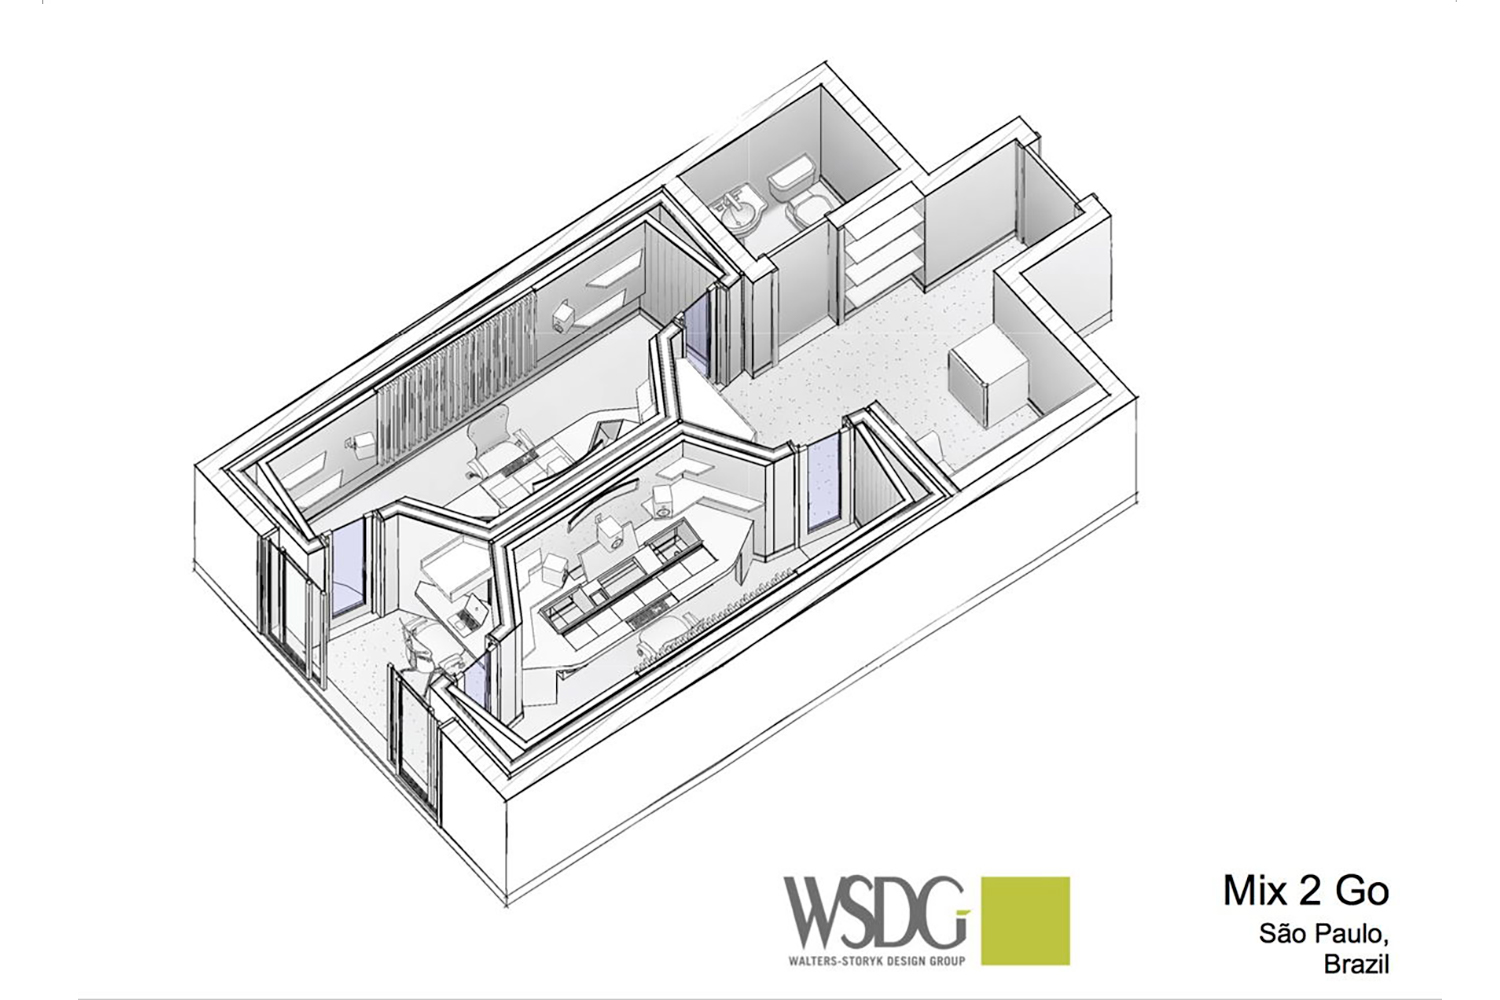 Mix2go is located in Sao Paulo, Brazil and is an innovative 3D mixing facility. WSDG was commissioned to design a space where 3D mixes audio could be created. Presentation Drawing.